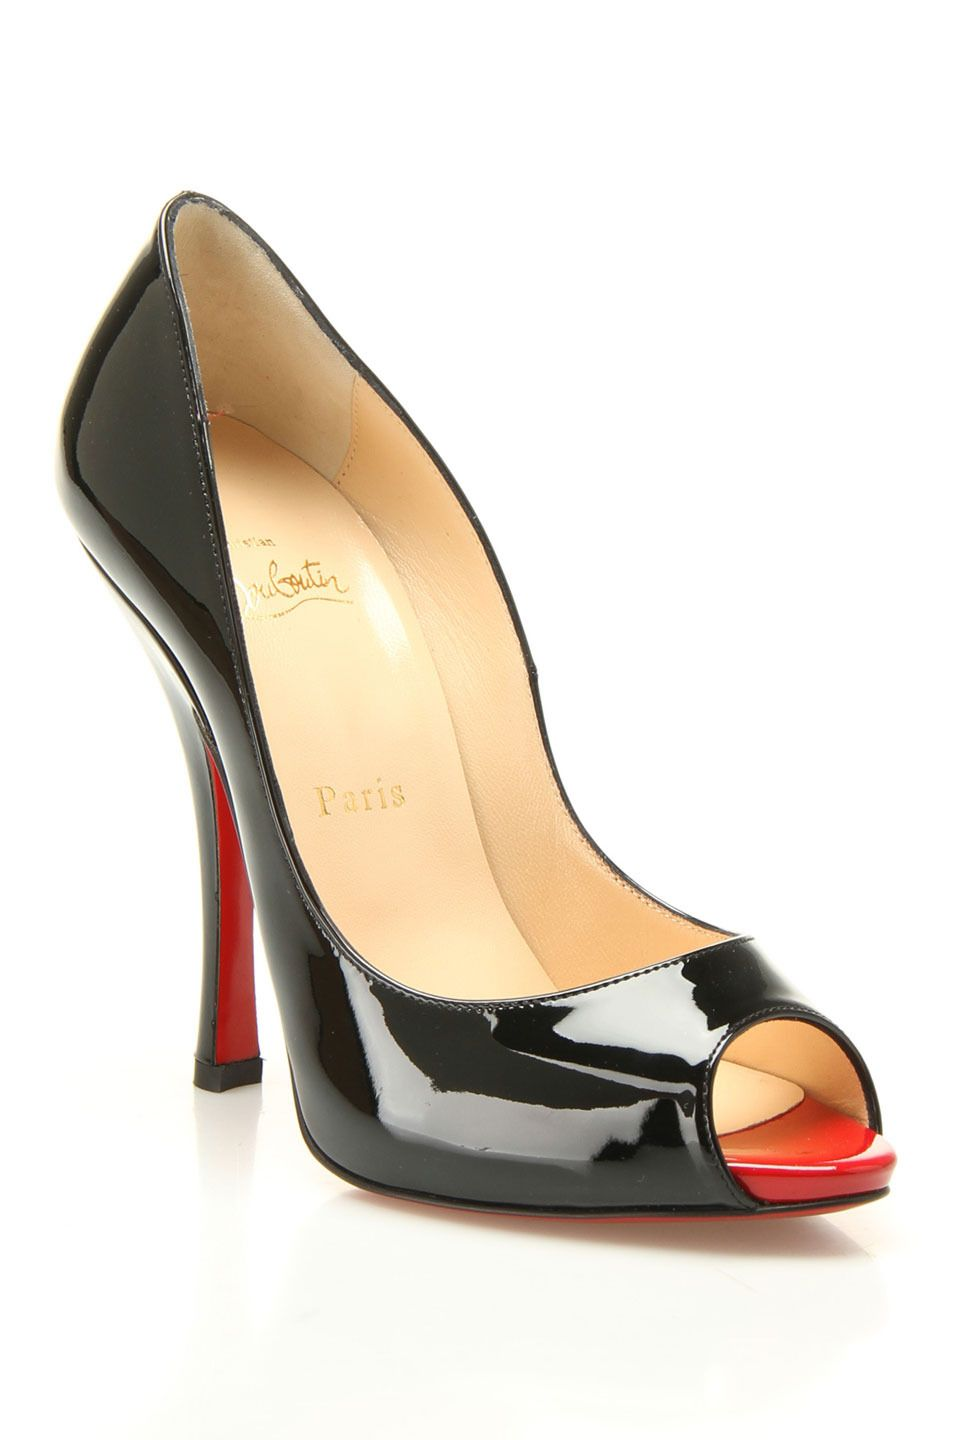 Christian Louboutin Maryl Pumps In Black.